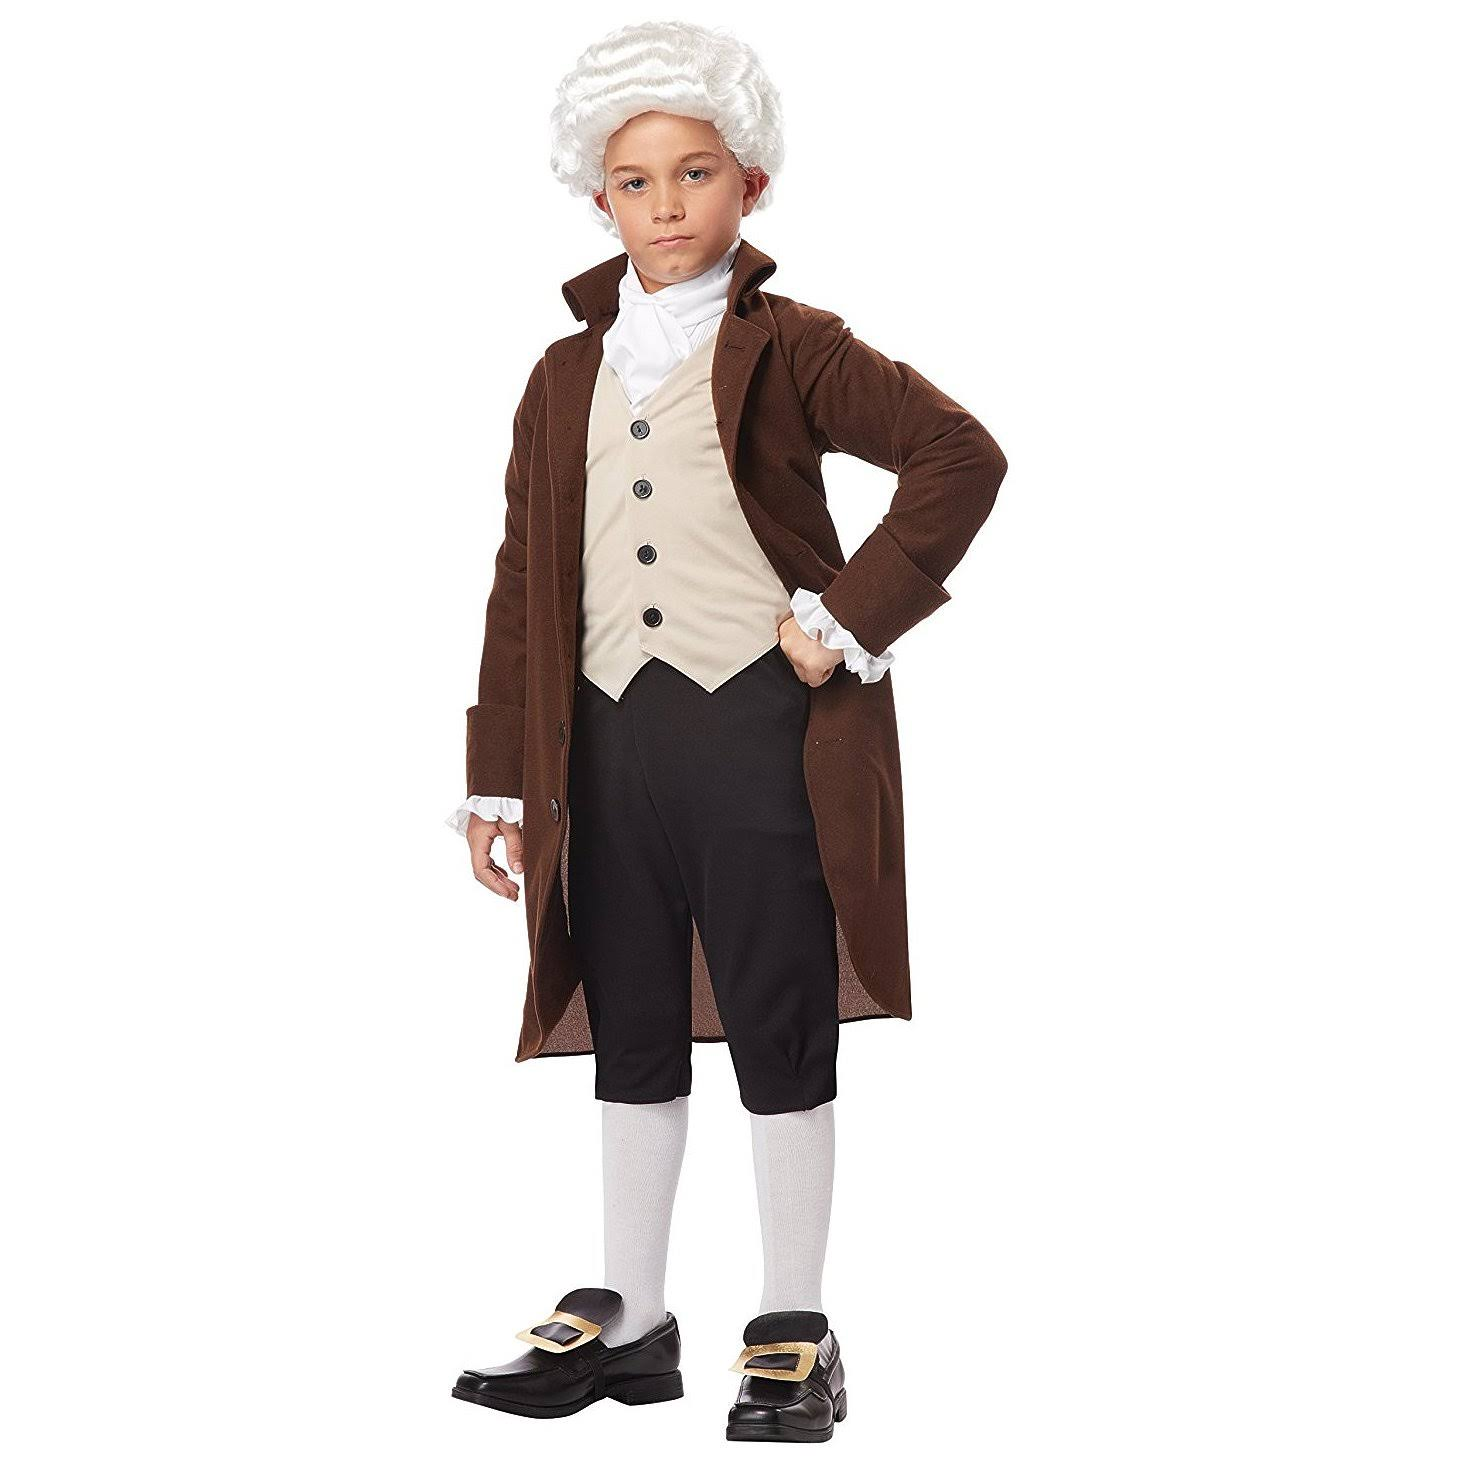 Benjamin Franklin Colonial Child Costume